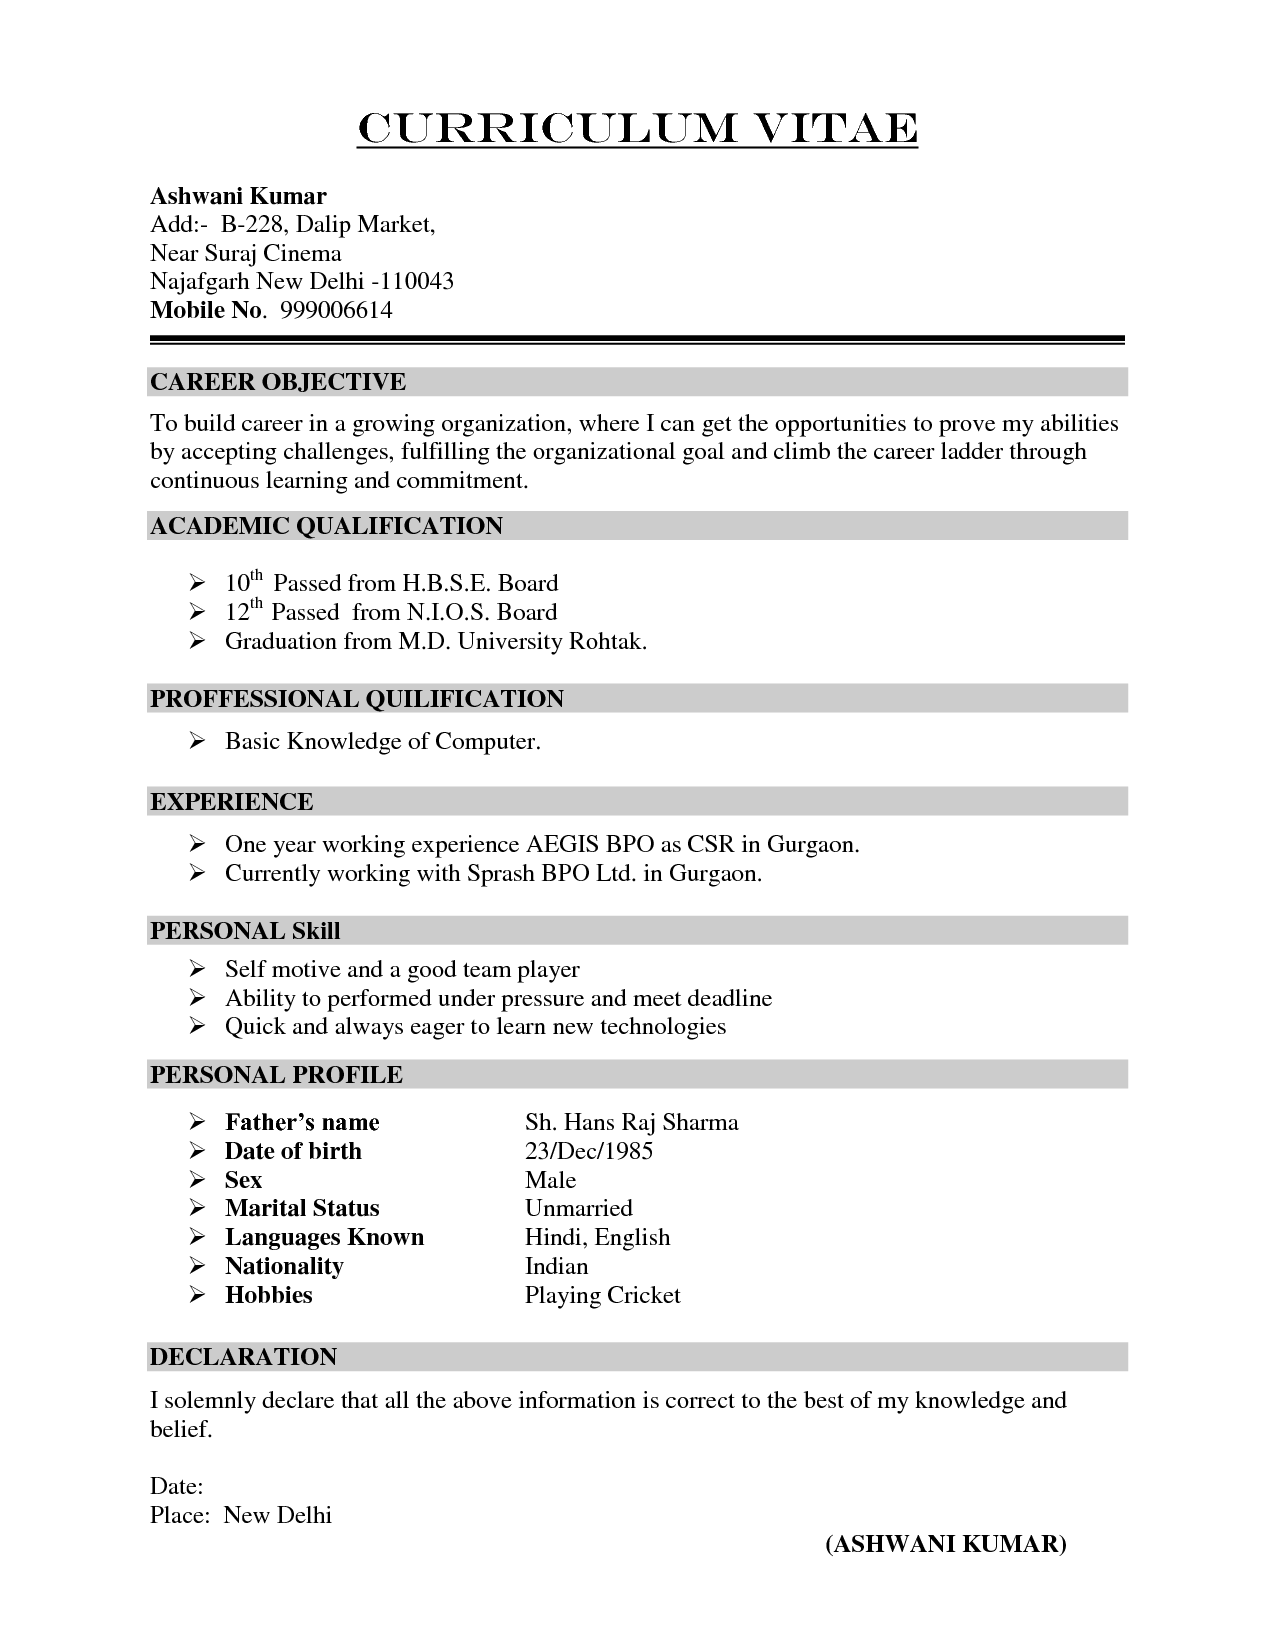 sample resume teacher experience resume builder sample resume teacher experience sample resume preschool teacher resume exforsys resume samples resume examples of